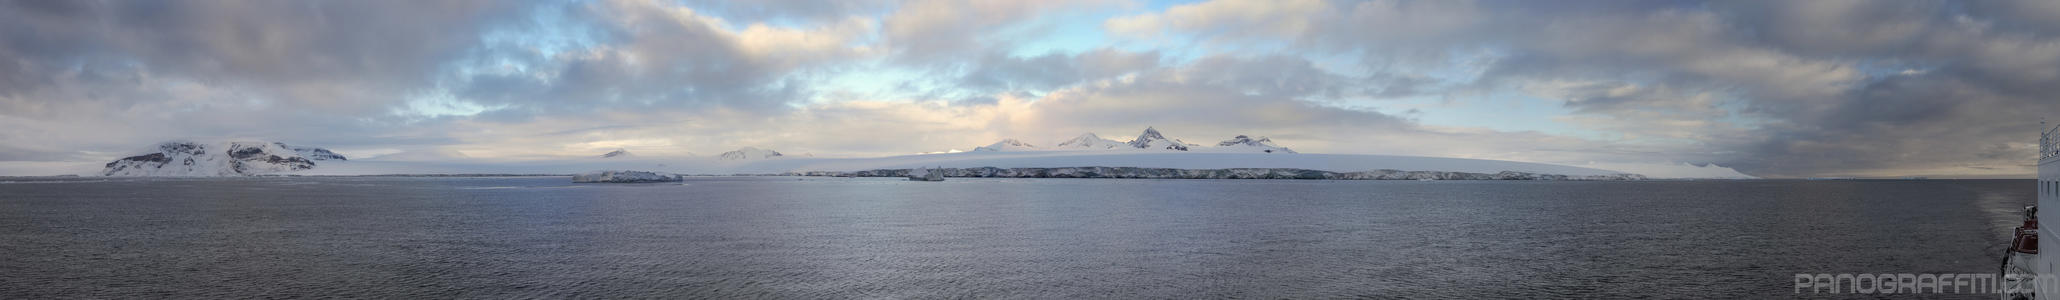 Arriving in the Antarctic Peninsula on the Akademik Loffe - 1,000 km away from South America, the harbors of the Antarctic Peninsula offer the first opportunity for calm waters after crossing the Drake.